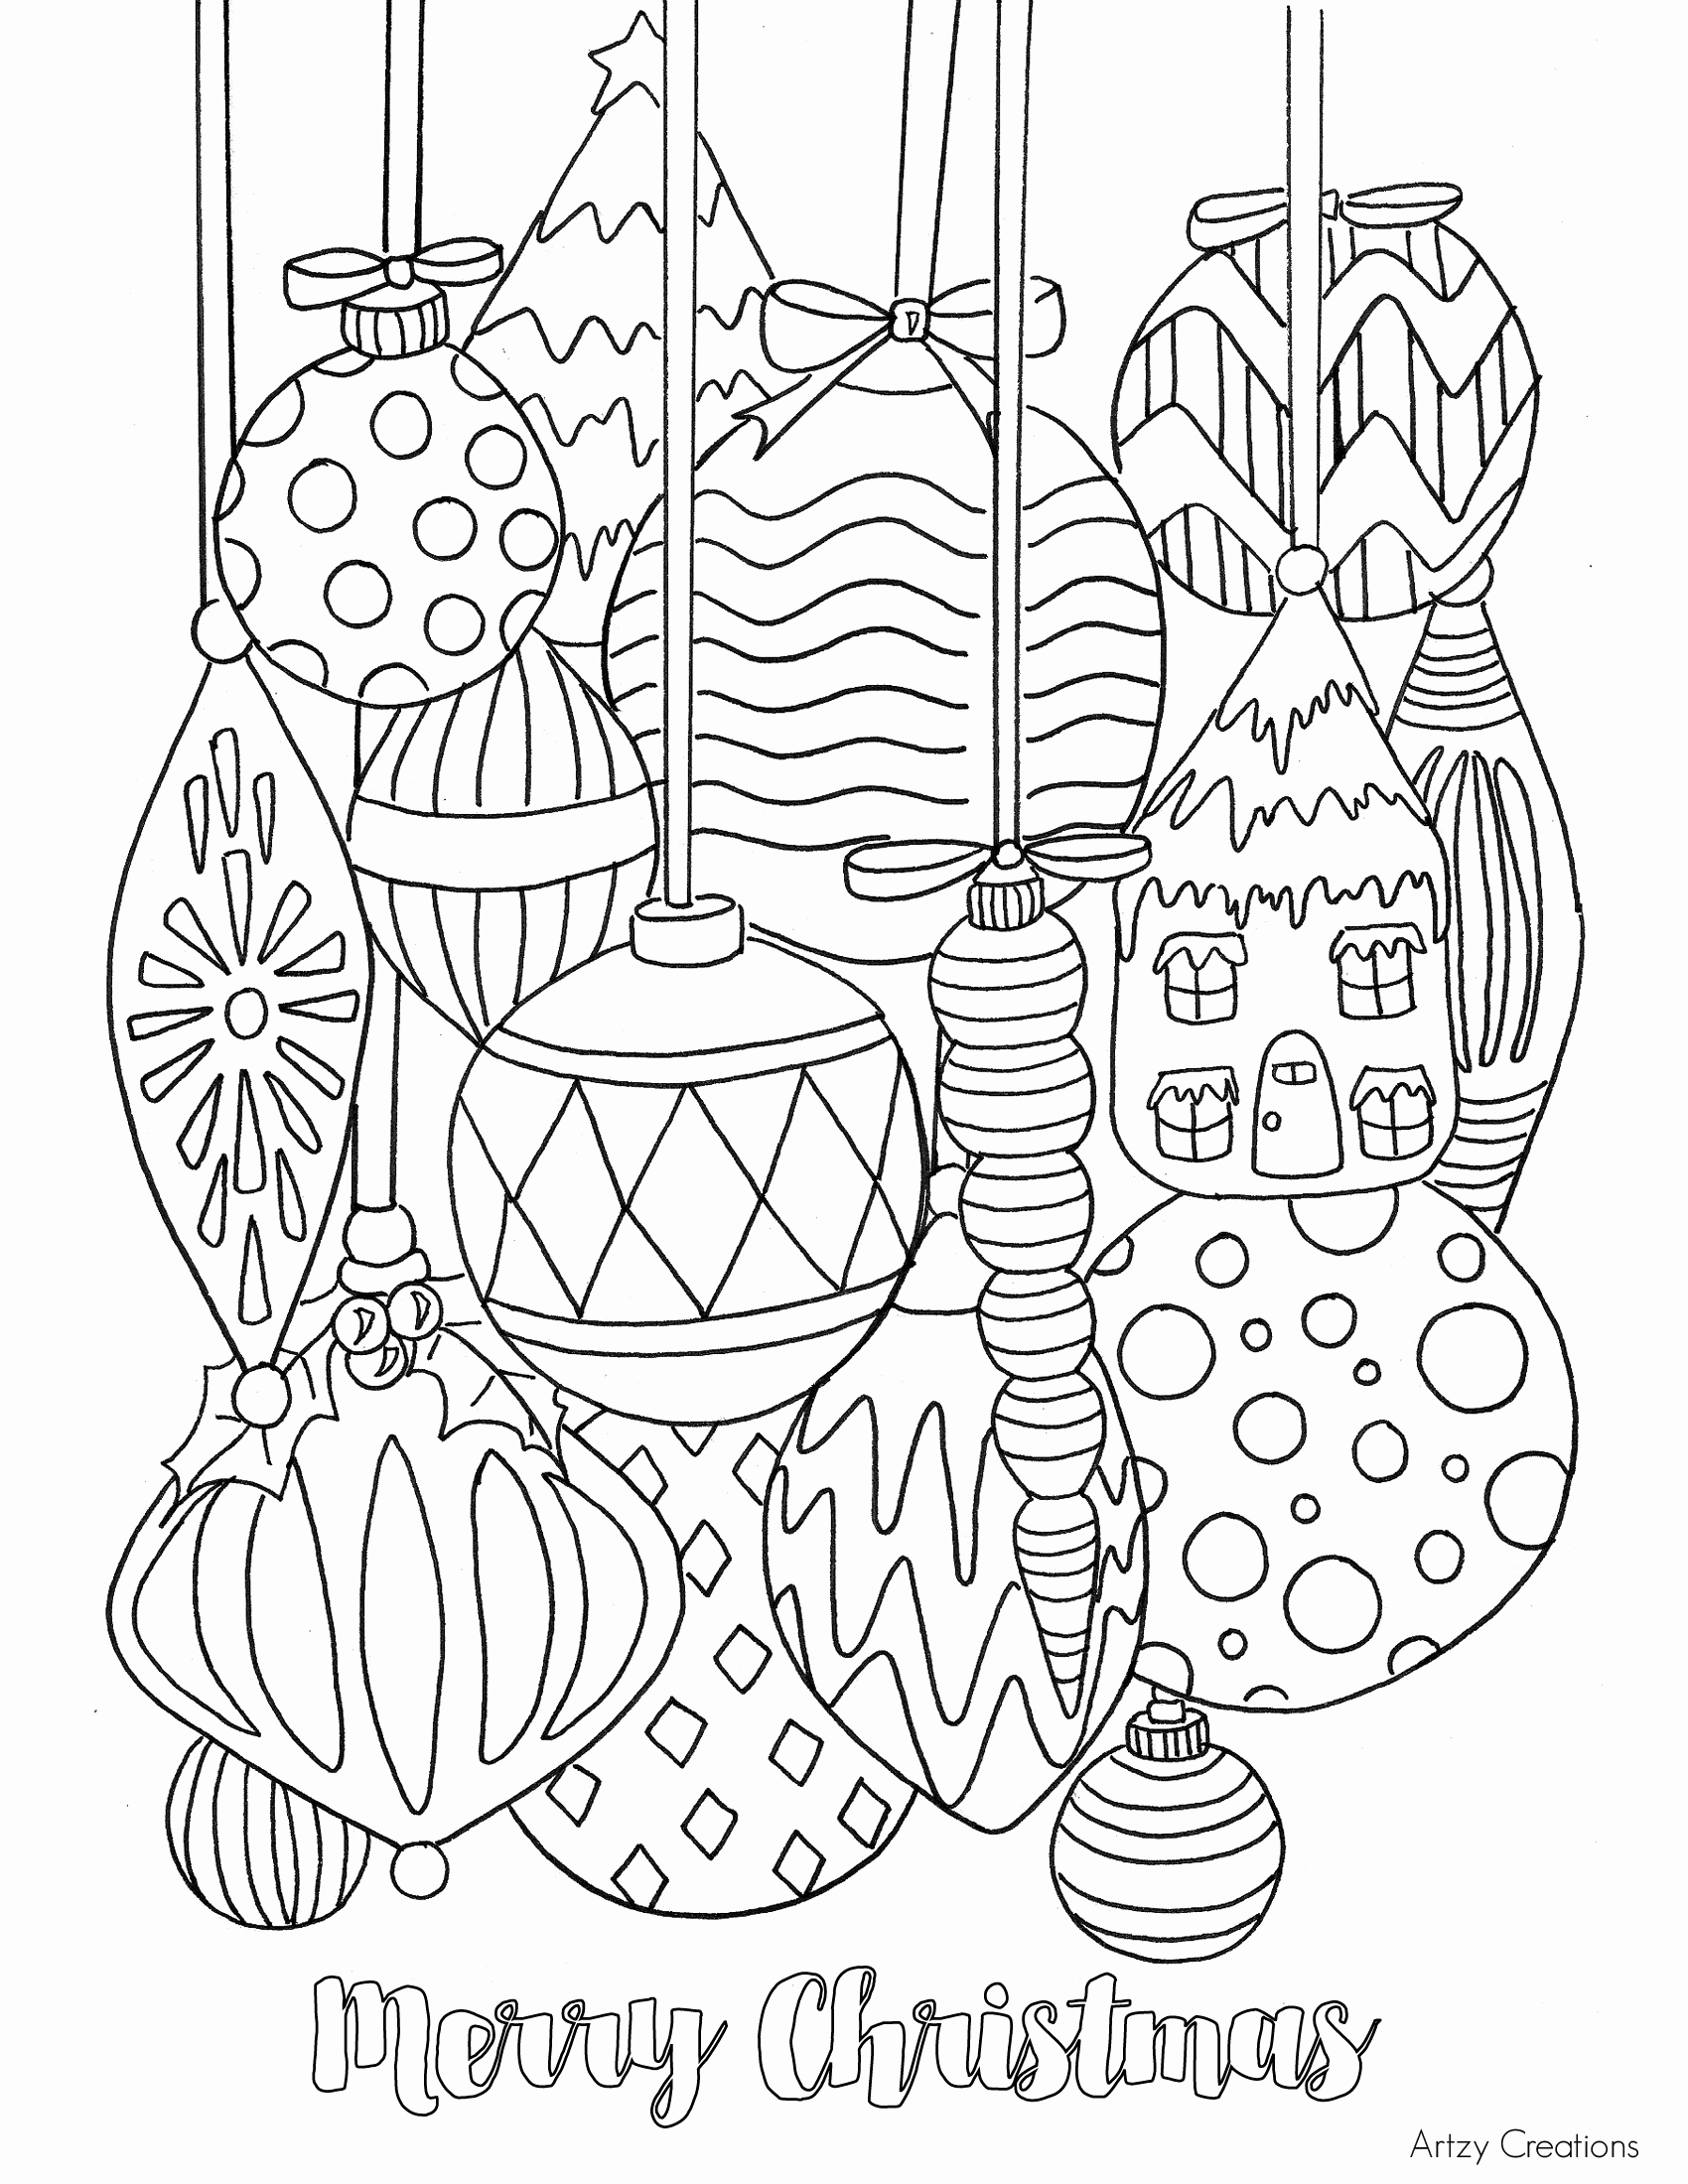 1700x2200 Crayola Giant Coloring Pages Luxury Star Wars On Yoda Coloring